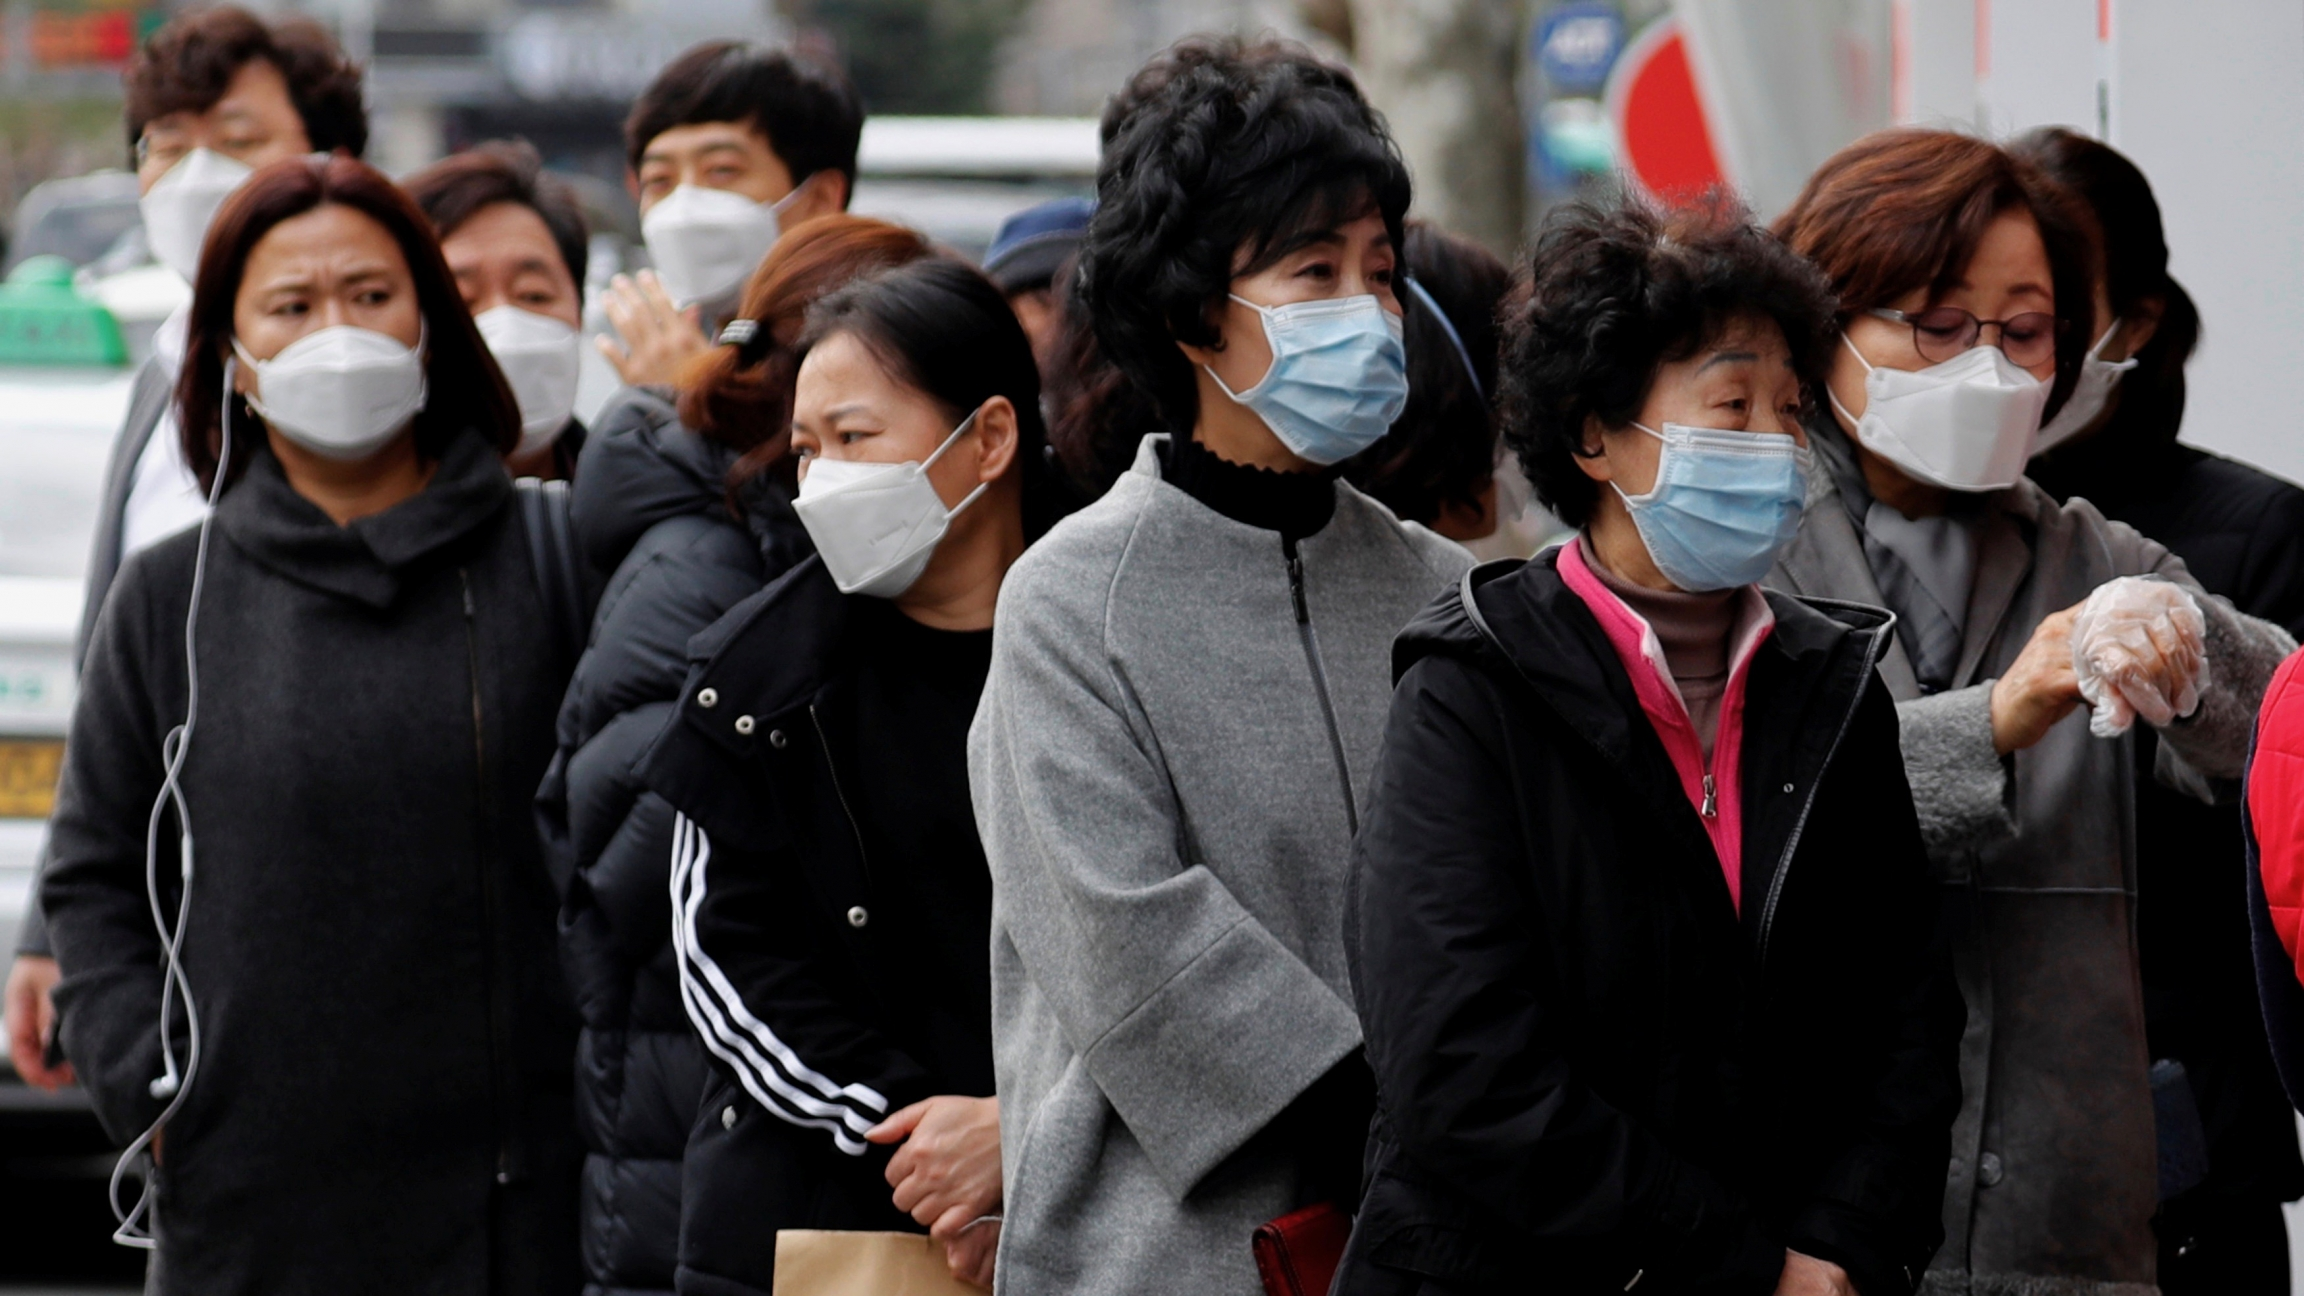 People wearing masks stand in a line to buy face masks in front of a drug store amid the rise in confirmed cases of the novel coronavirus disease of COVID-19 in Daegu, South Korea, March 3, 2020.